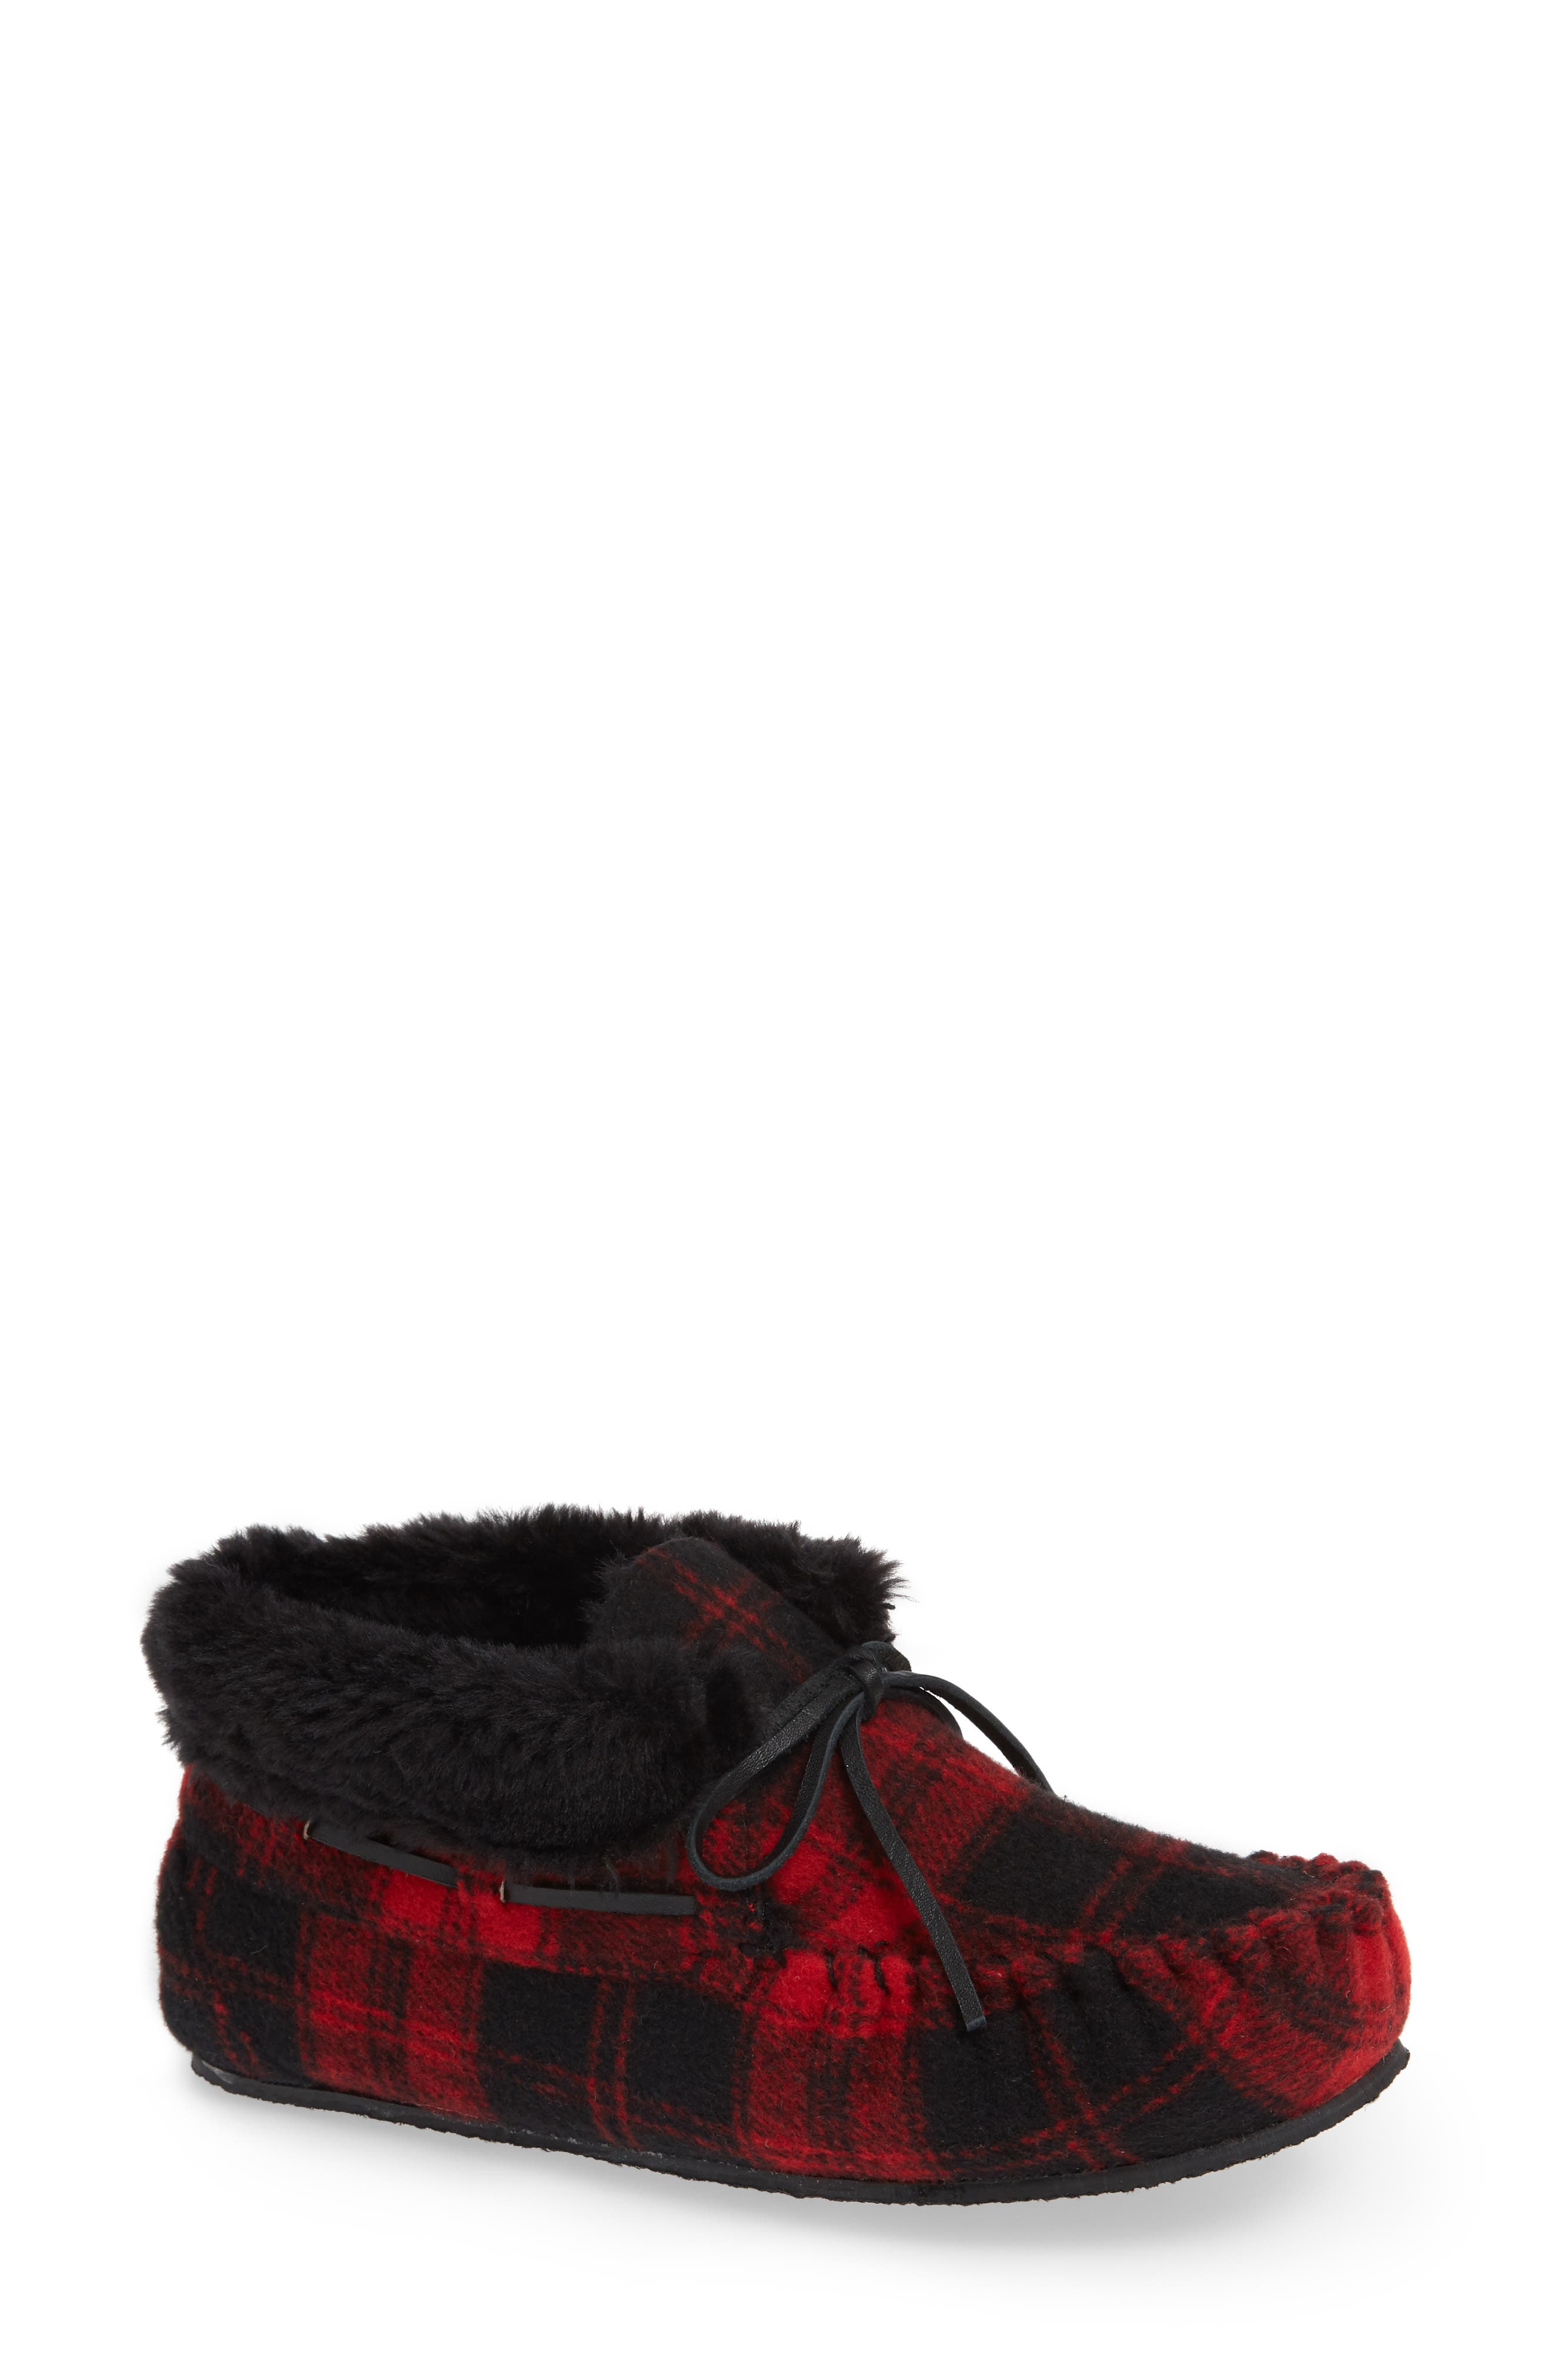 MINNETONKA,                             'Chrissy' Slipper Bootie,                             Main thumbnail 1, color,                             RED PLAID FABRIC